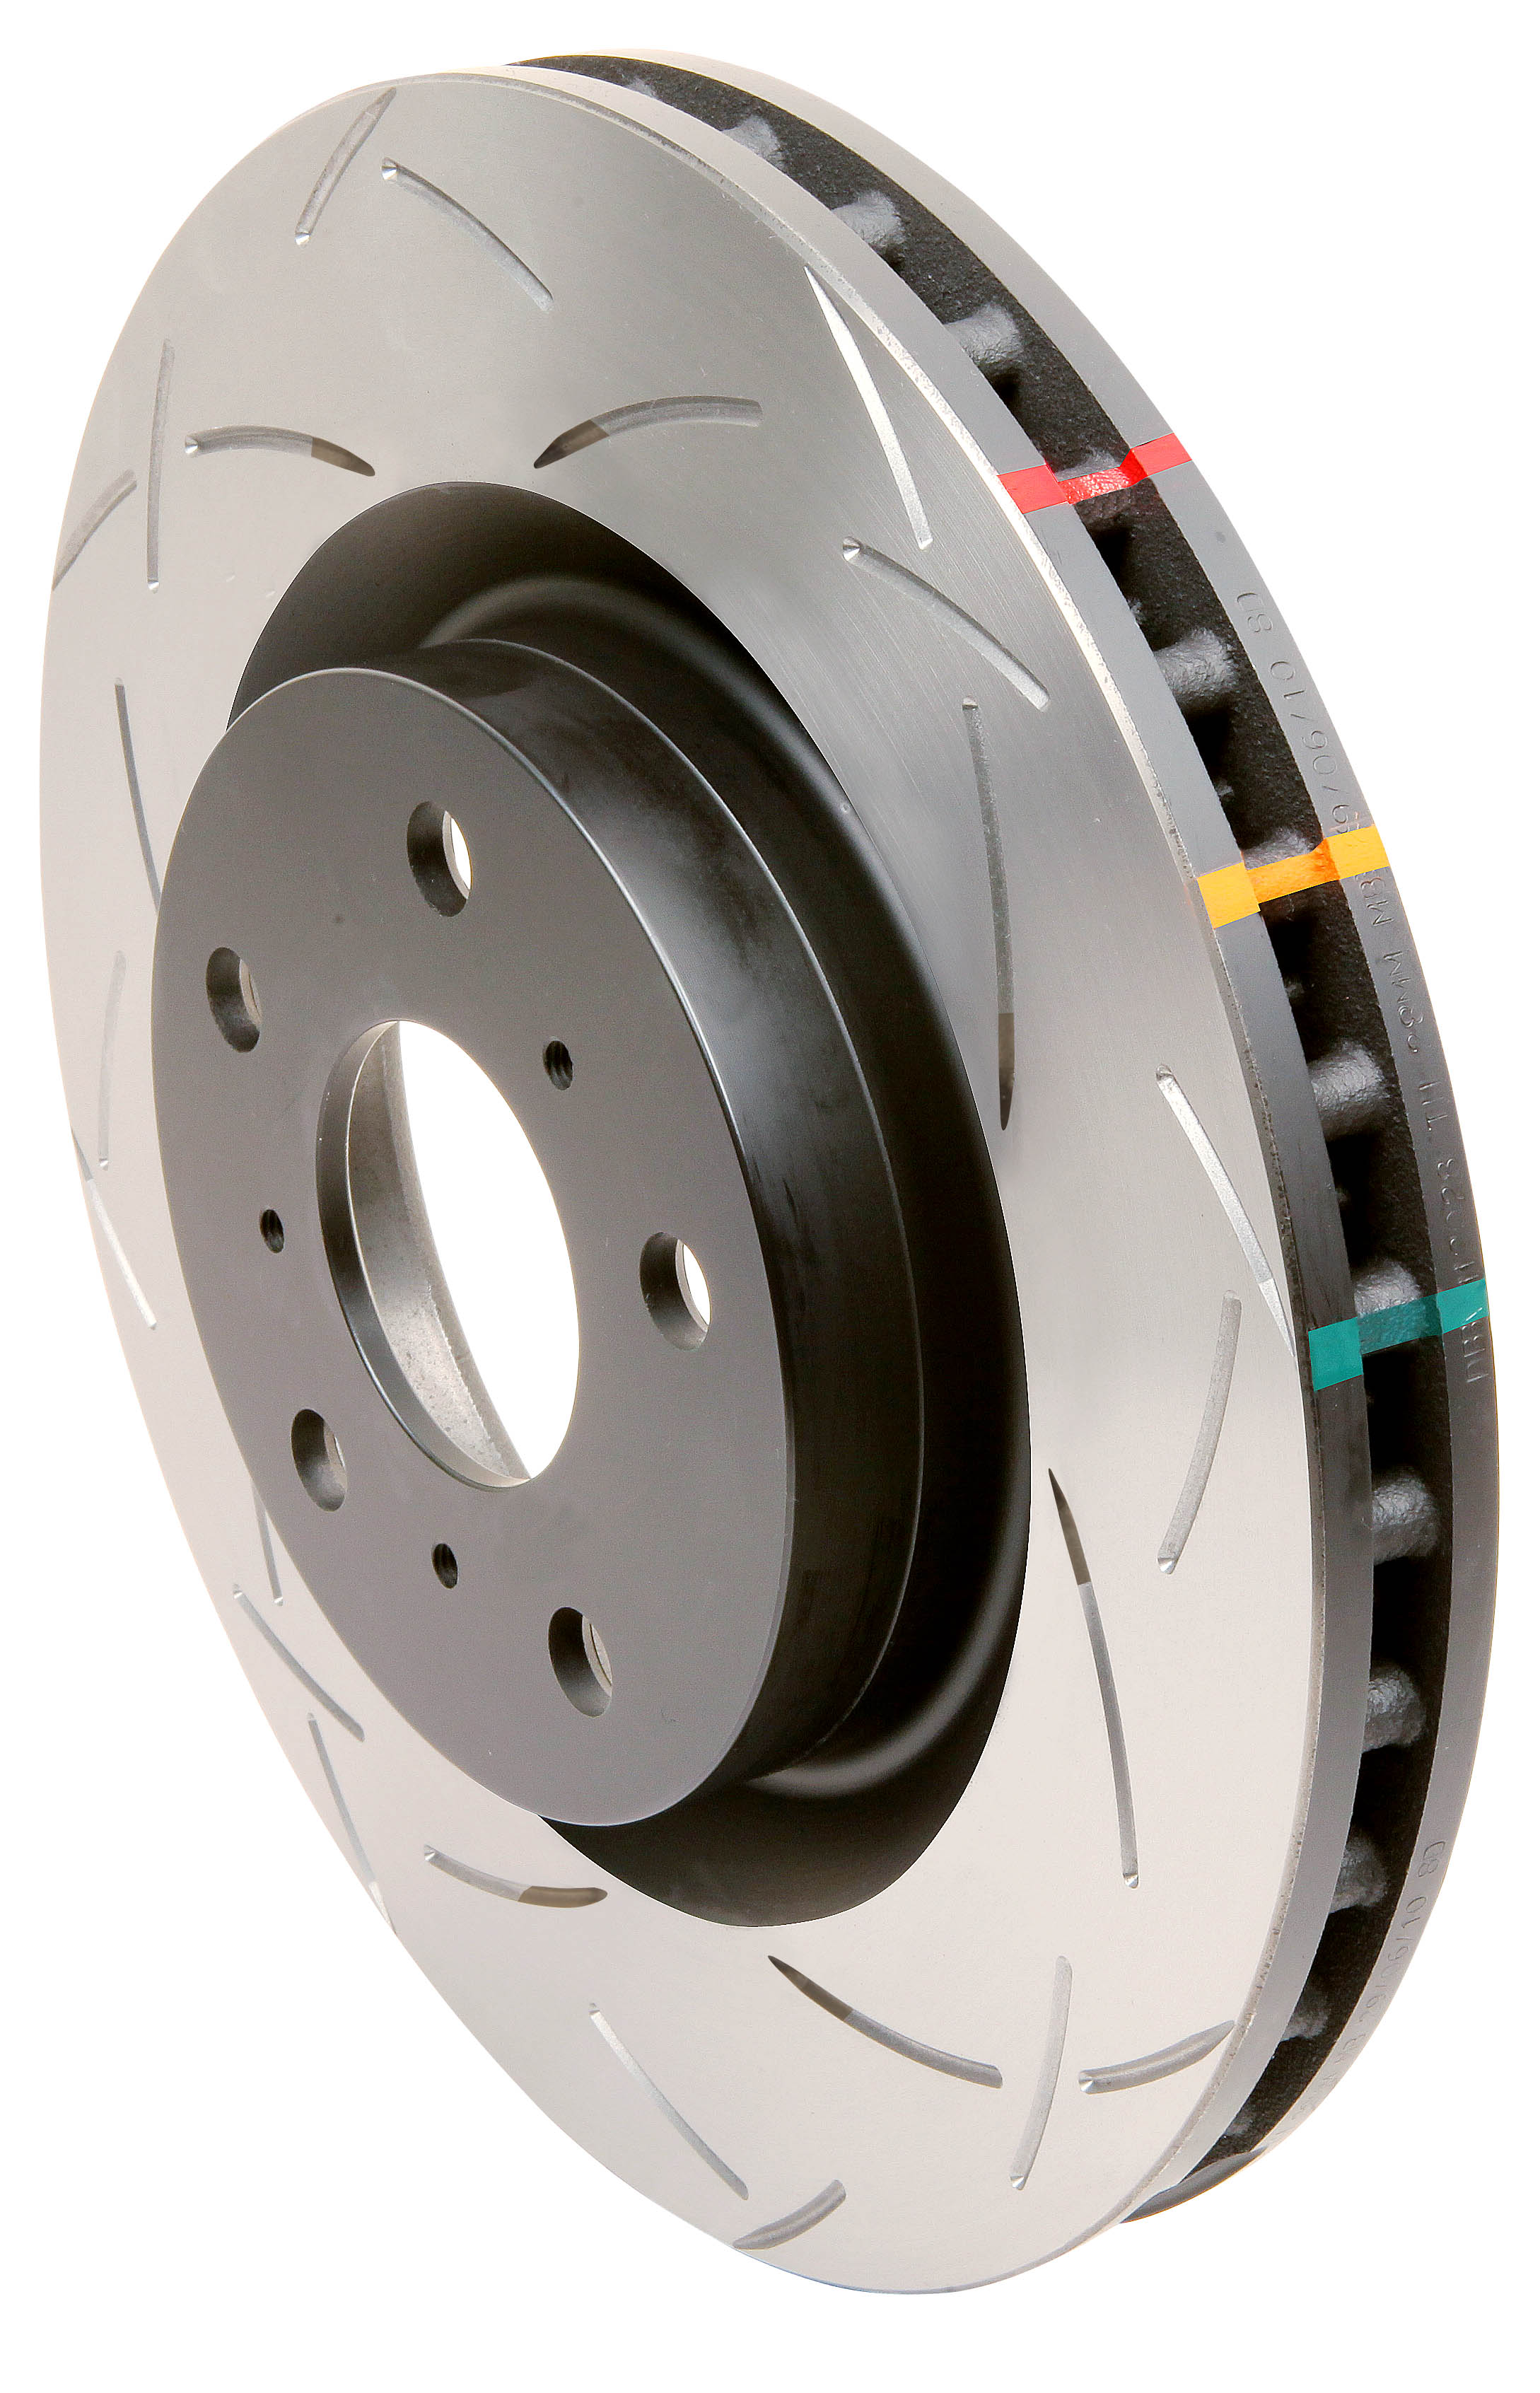 DBA T3 4000 Series - T-Slot Uni-Directional Slotted Rotor - DBA 42724S